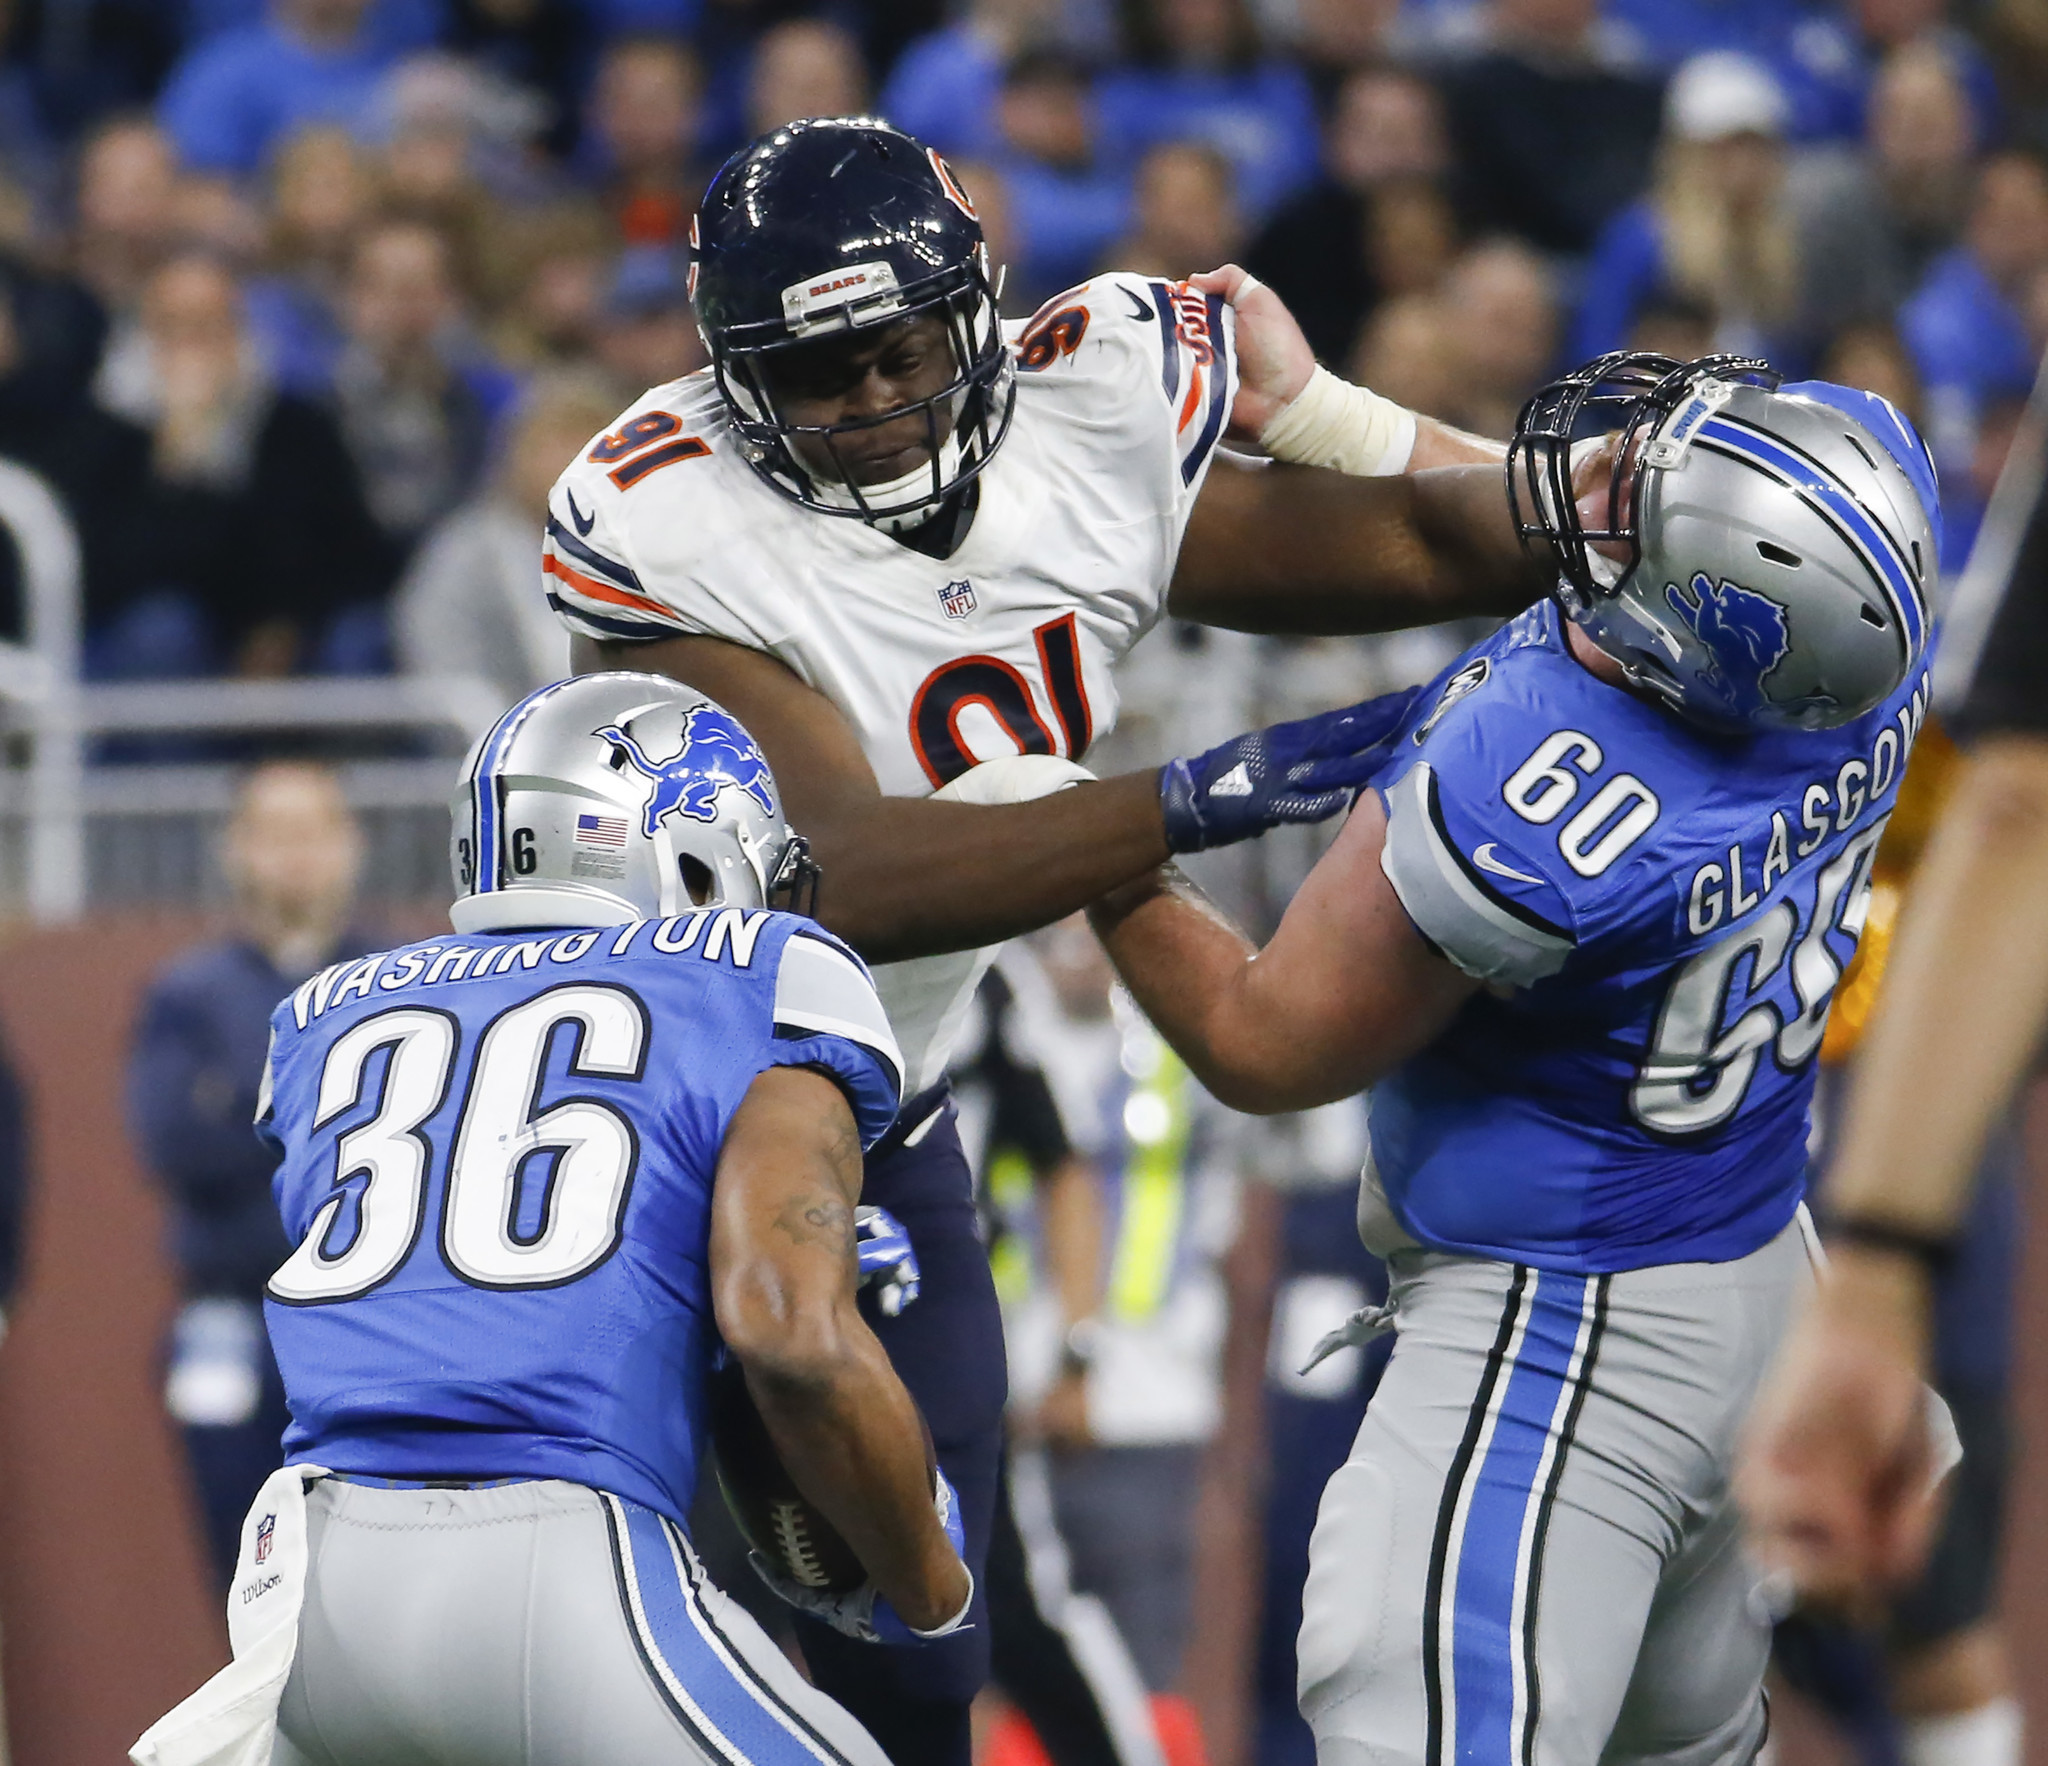 Ct-defensive-line-bears-camp-preview-spt-0717-20170716